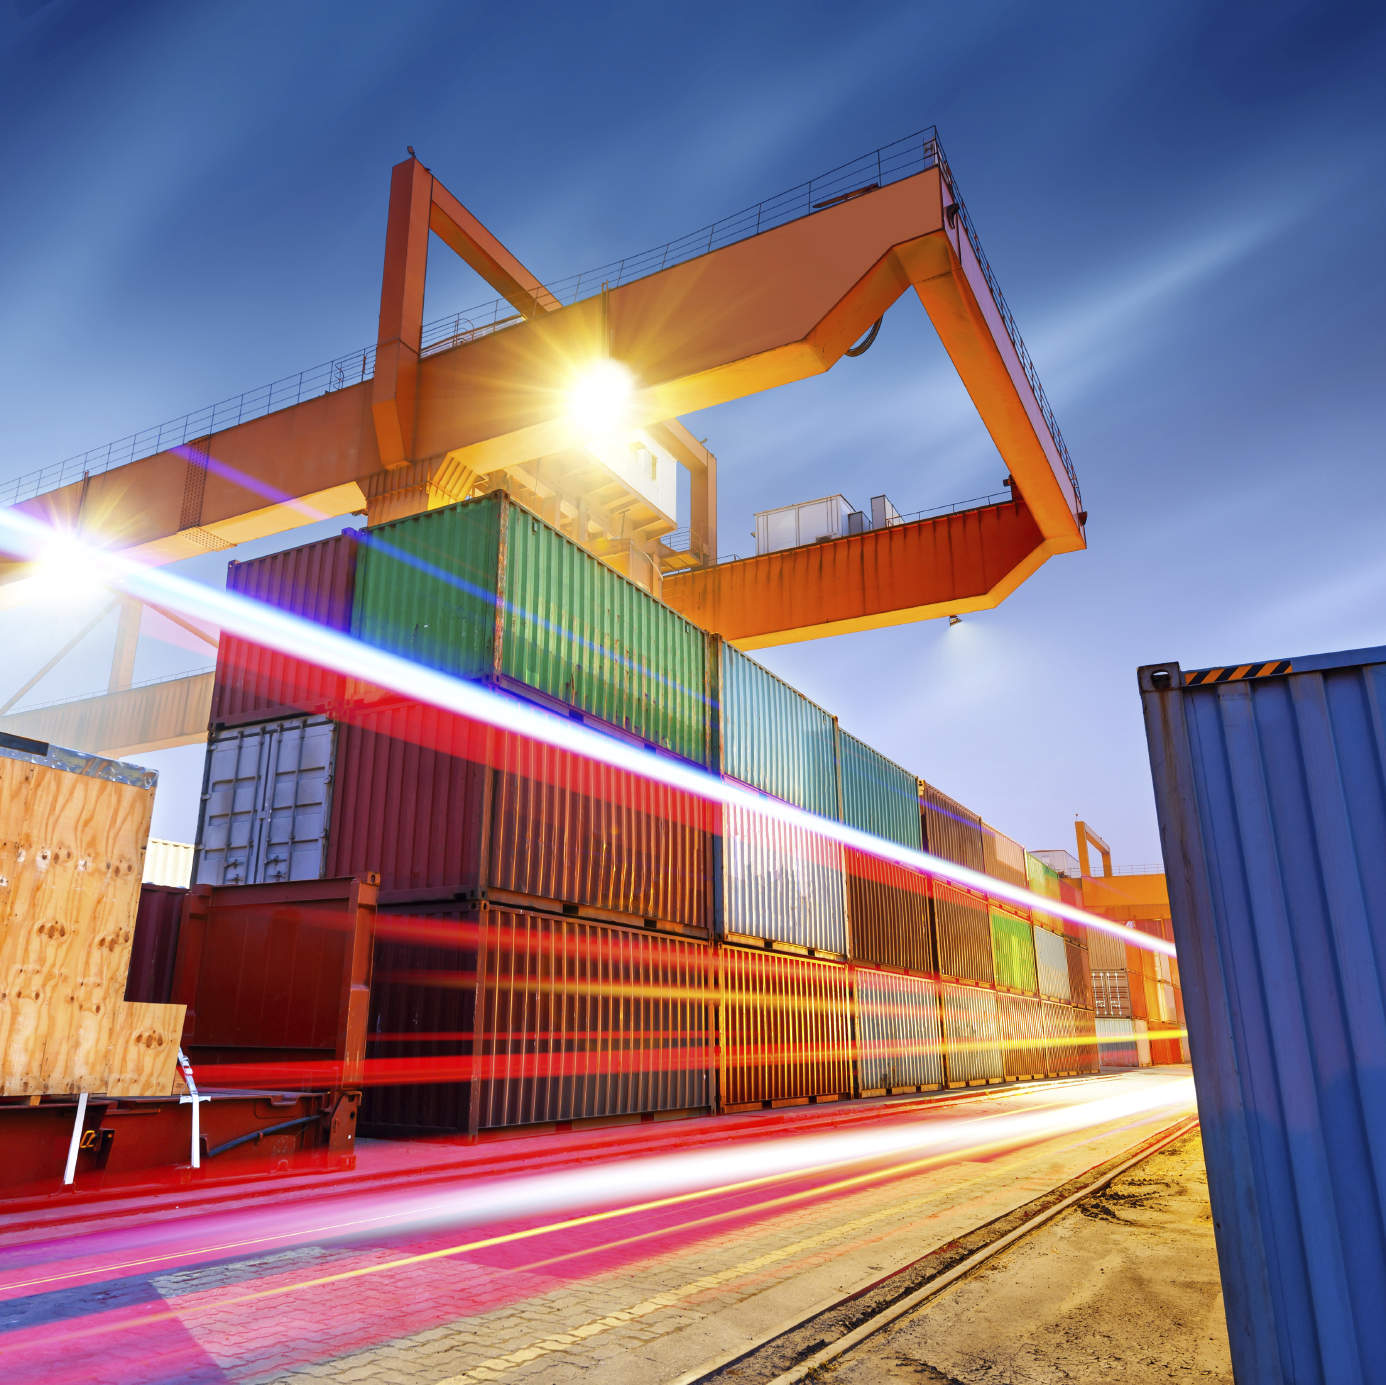 How does Container Security Iniative (CSI) affect your cargo?